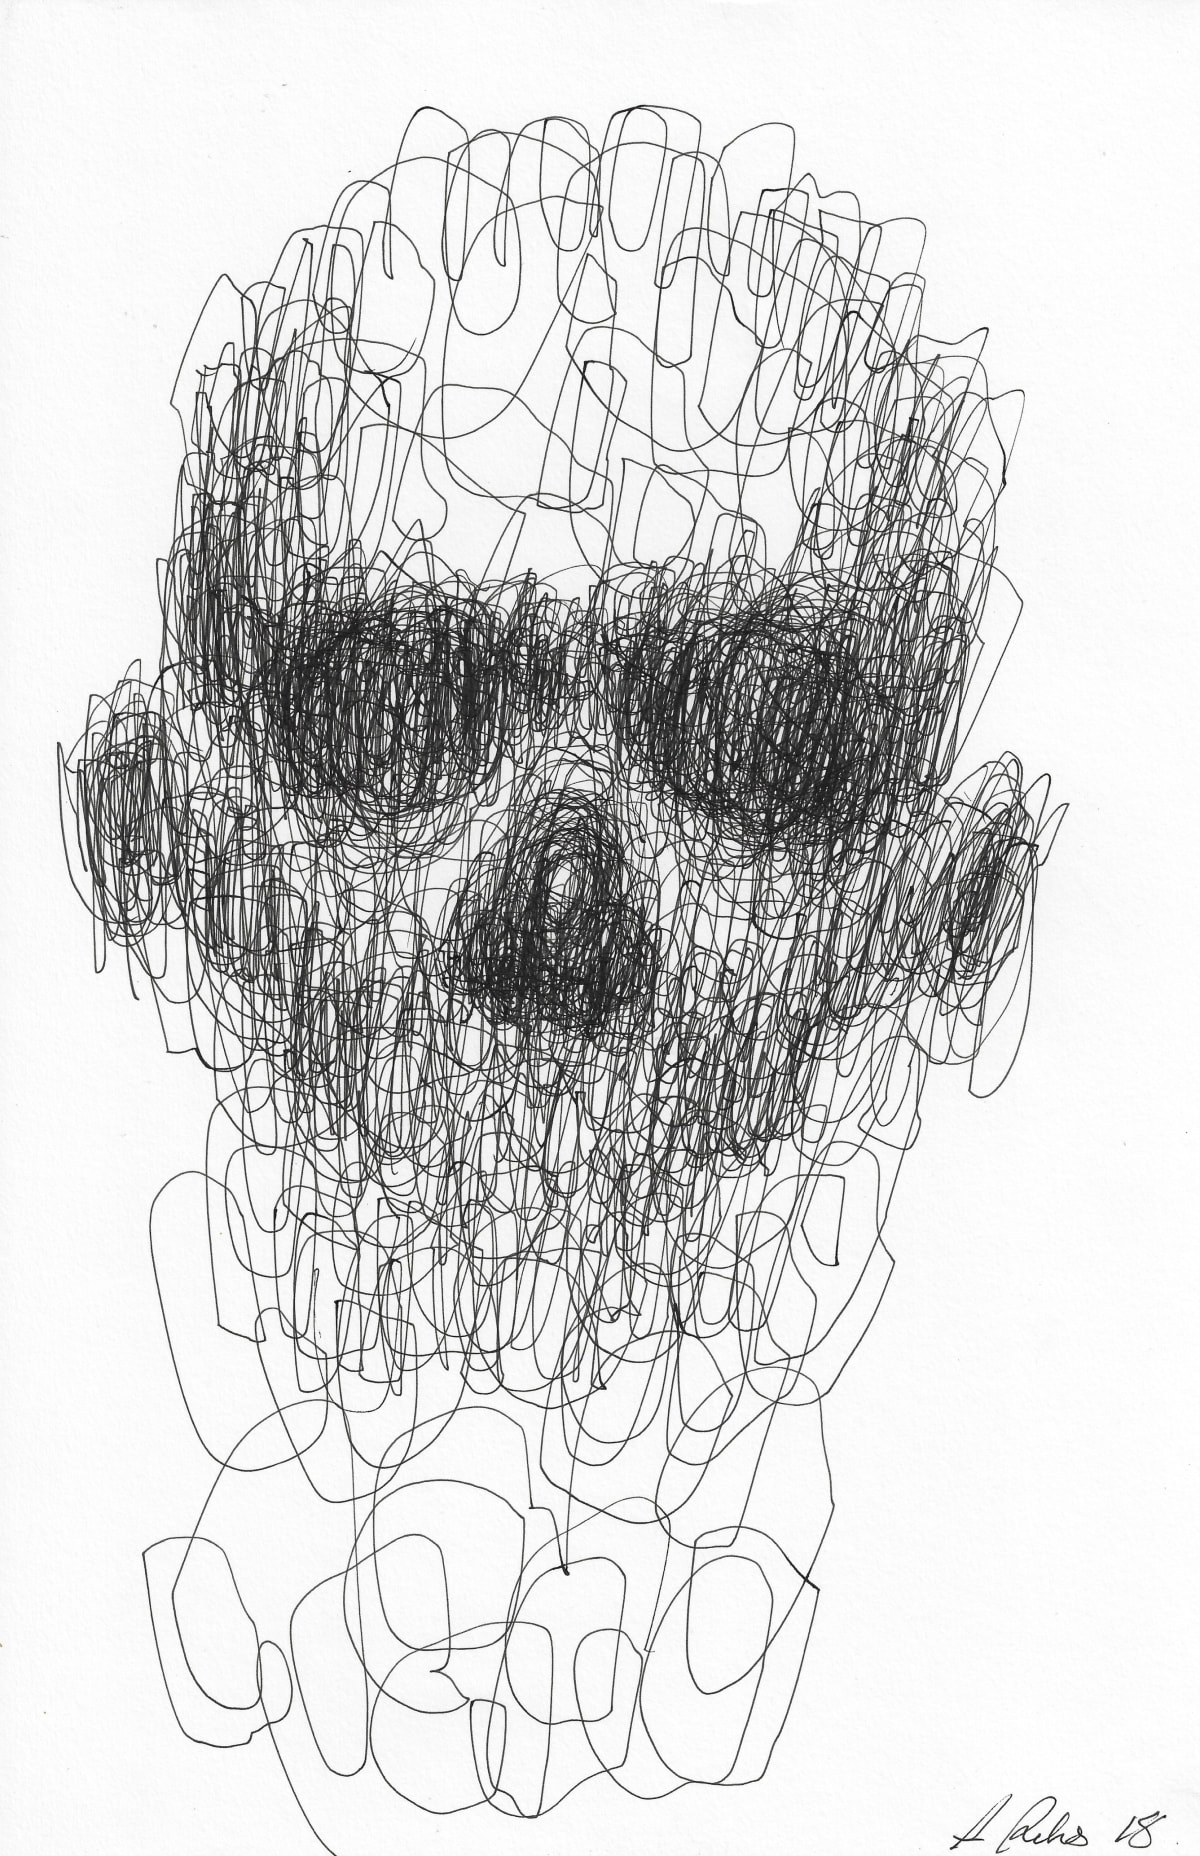 Adam Riches Untitled A3-13-005, 2018 Pen on Paper 27.6 x 42 cm 10 7/8 x 16 1/2 in